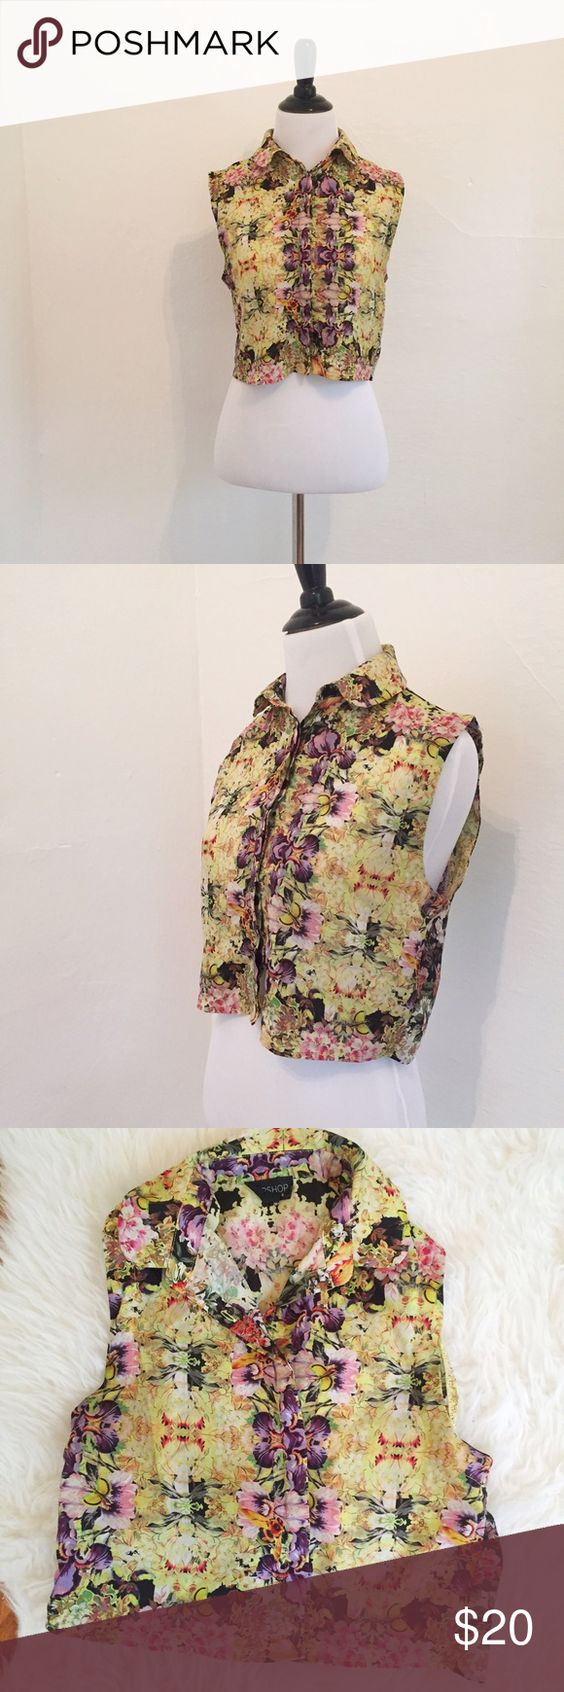 TOPSHOP Floral Cropped Blouse Semi-sheer cropped collared tank from TOPSHOP. Size 4. Features a floral garden print. Perfect for spring/summer! Never worn Topshop Tops Blouses